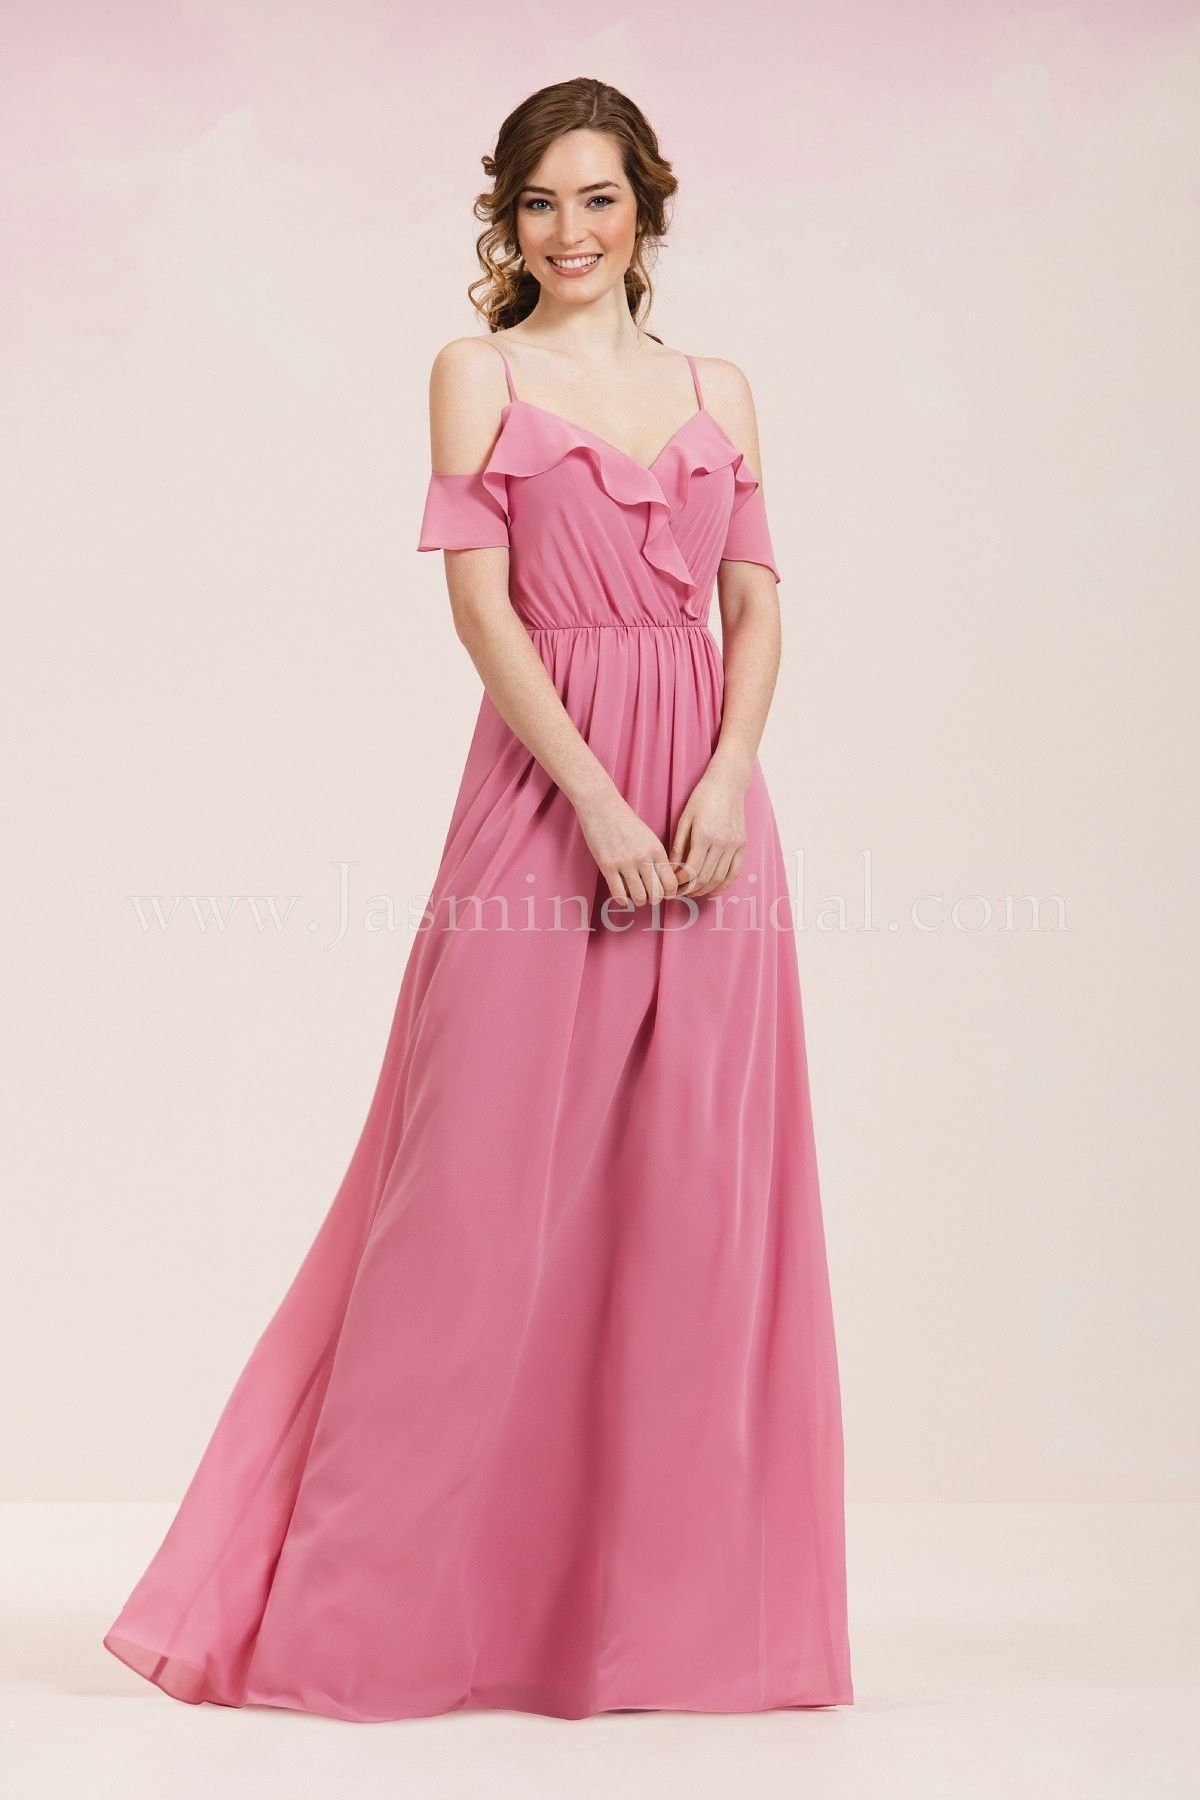 Jasmine bridal bridesmaid dress jasmine bridesmaids style p186056 in jasmine bridal bridesmaid dress jasmine bridesmaids style p186056 in rose petal ombrellifo Images